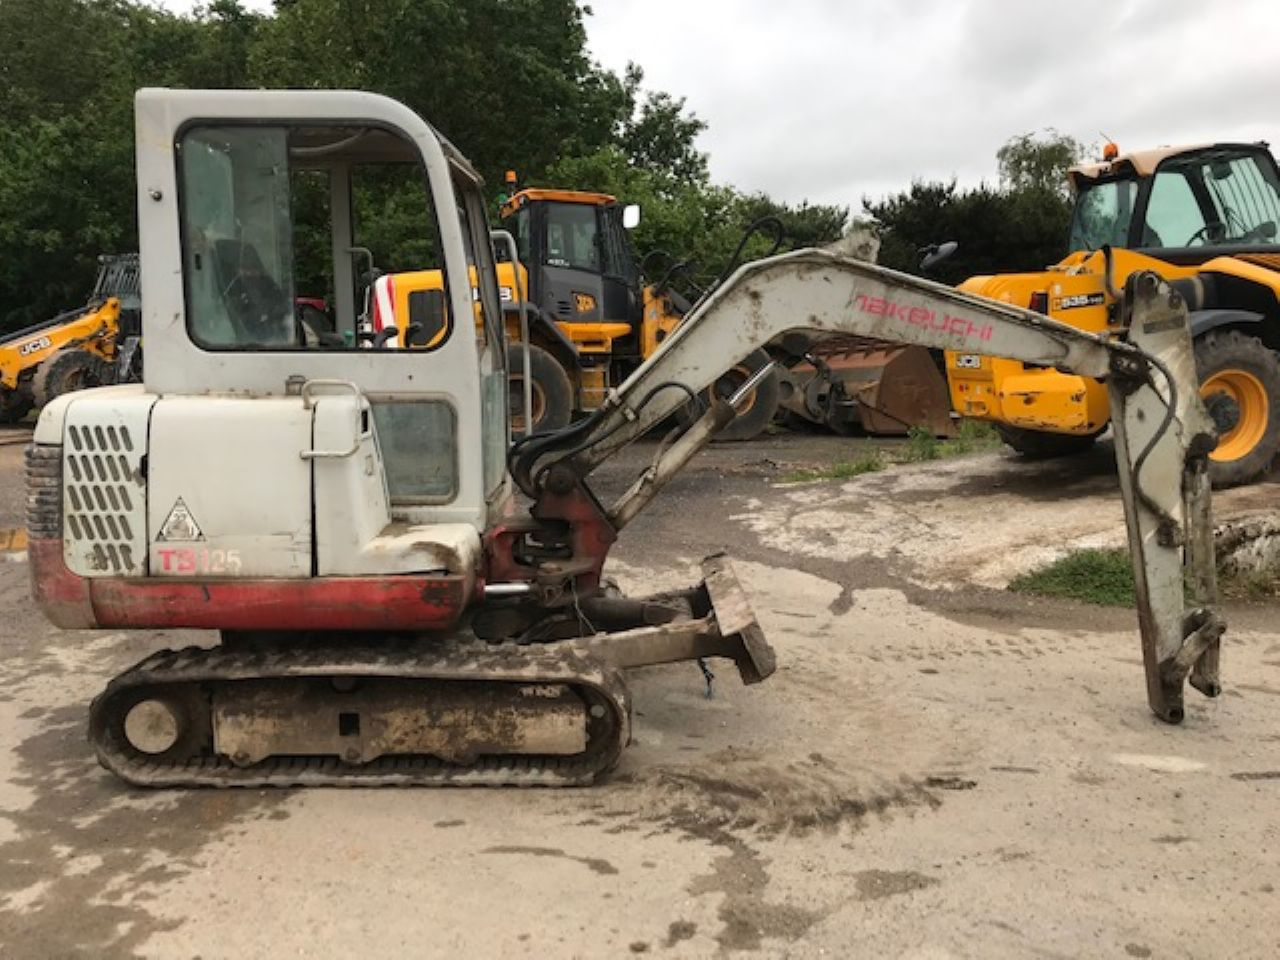 TAKEUCHI TB125 MINI DIGGER